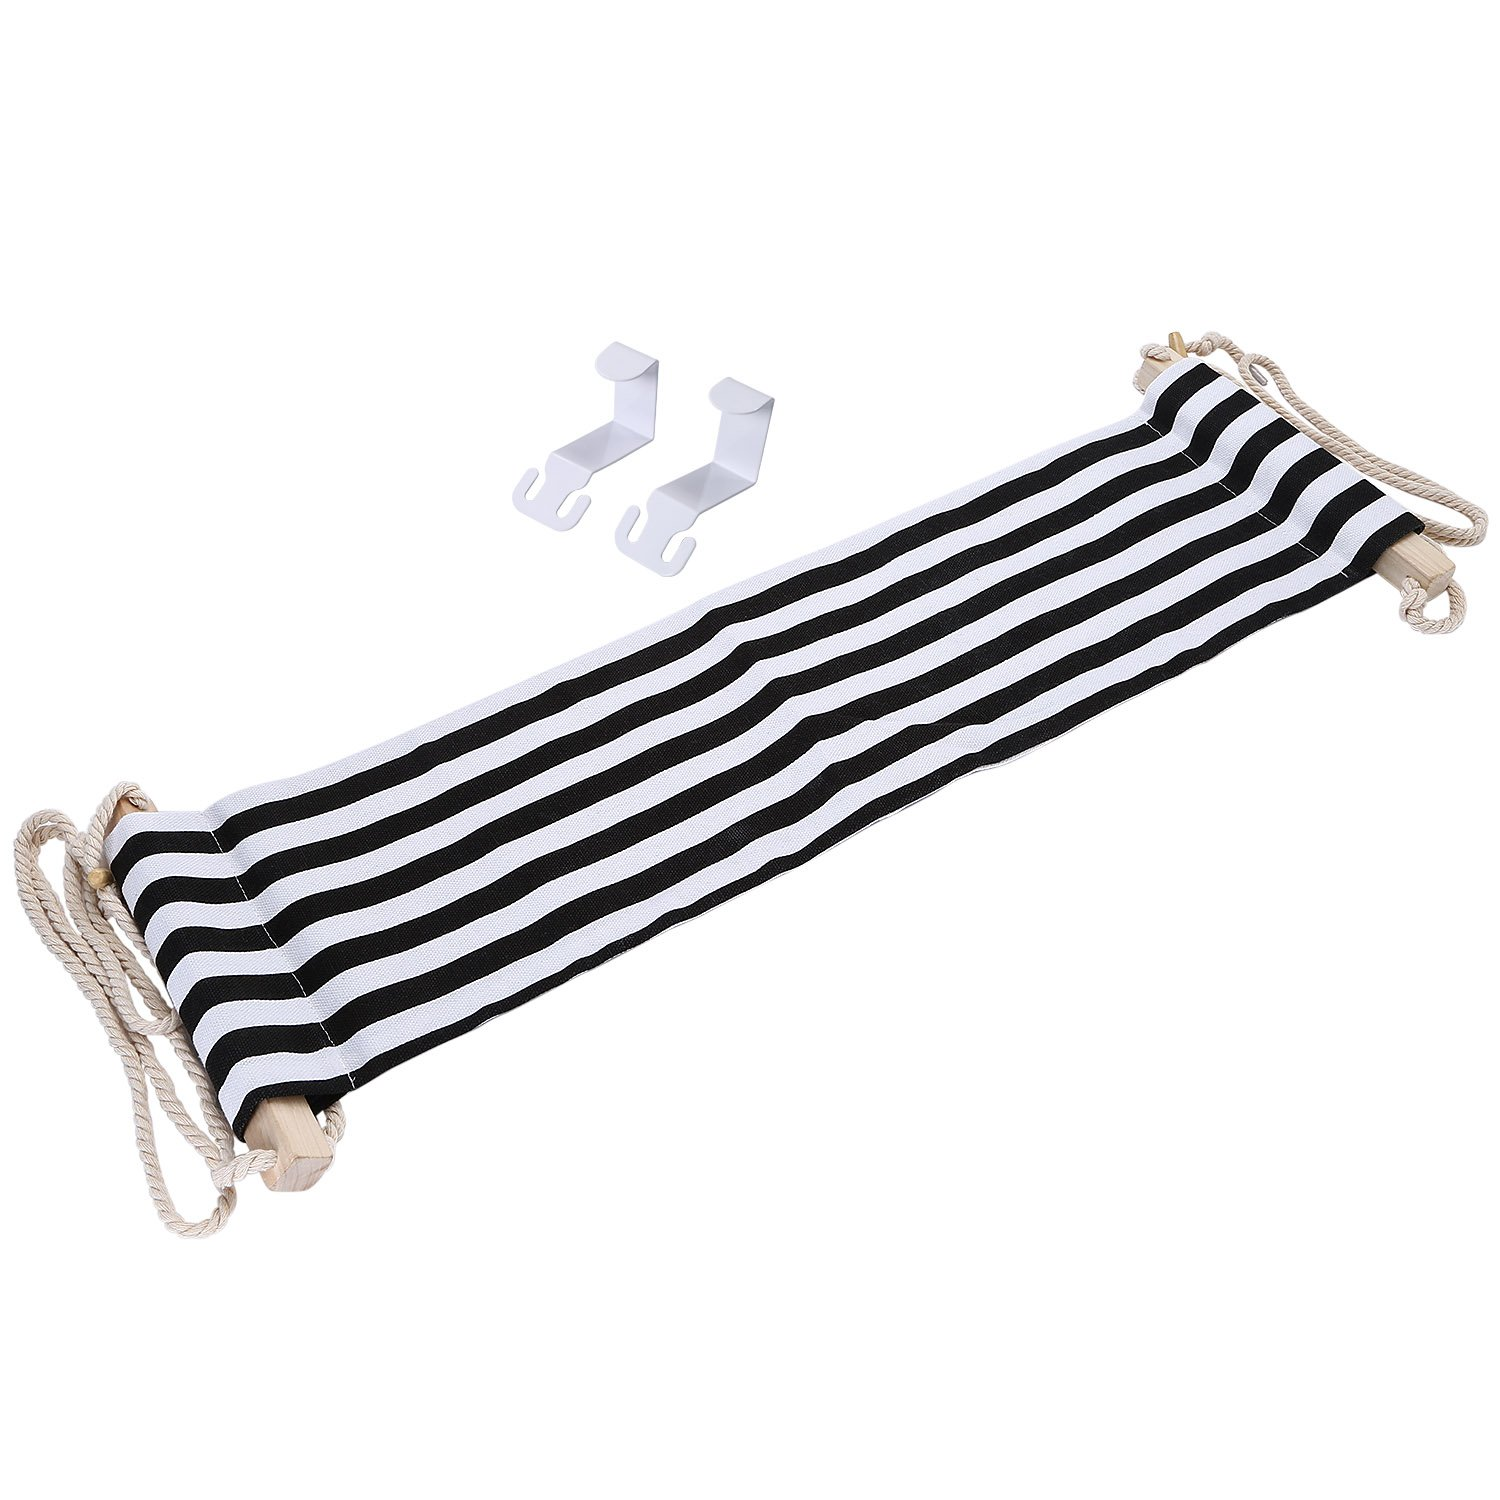 Mini Office Foot Rest Stand, Adjustable Desk Feet Hammock Replace Footstools For Home, Office Study and Relaxing, 1pc/box (Black and White stripes)